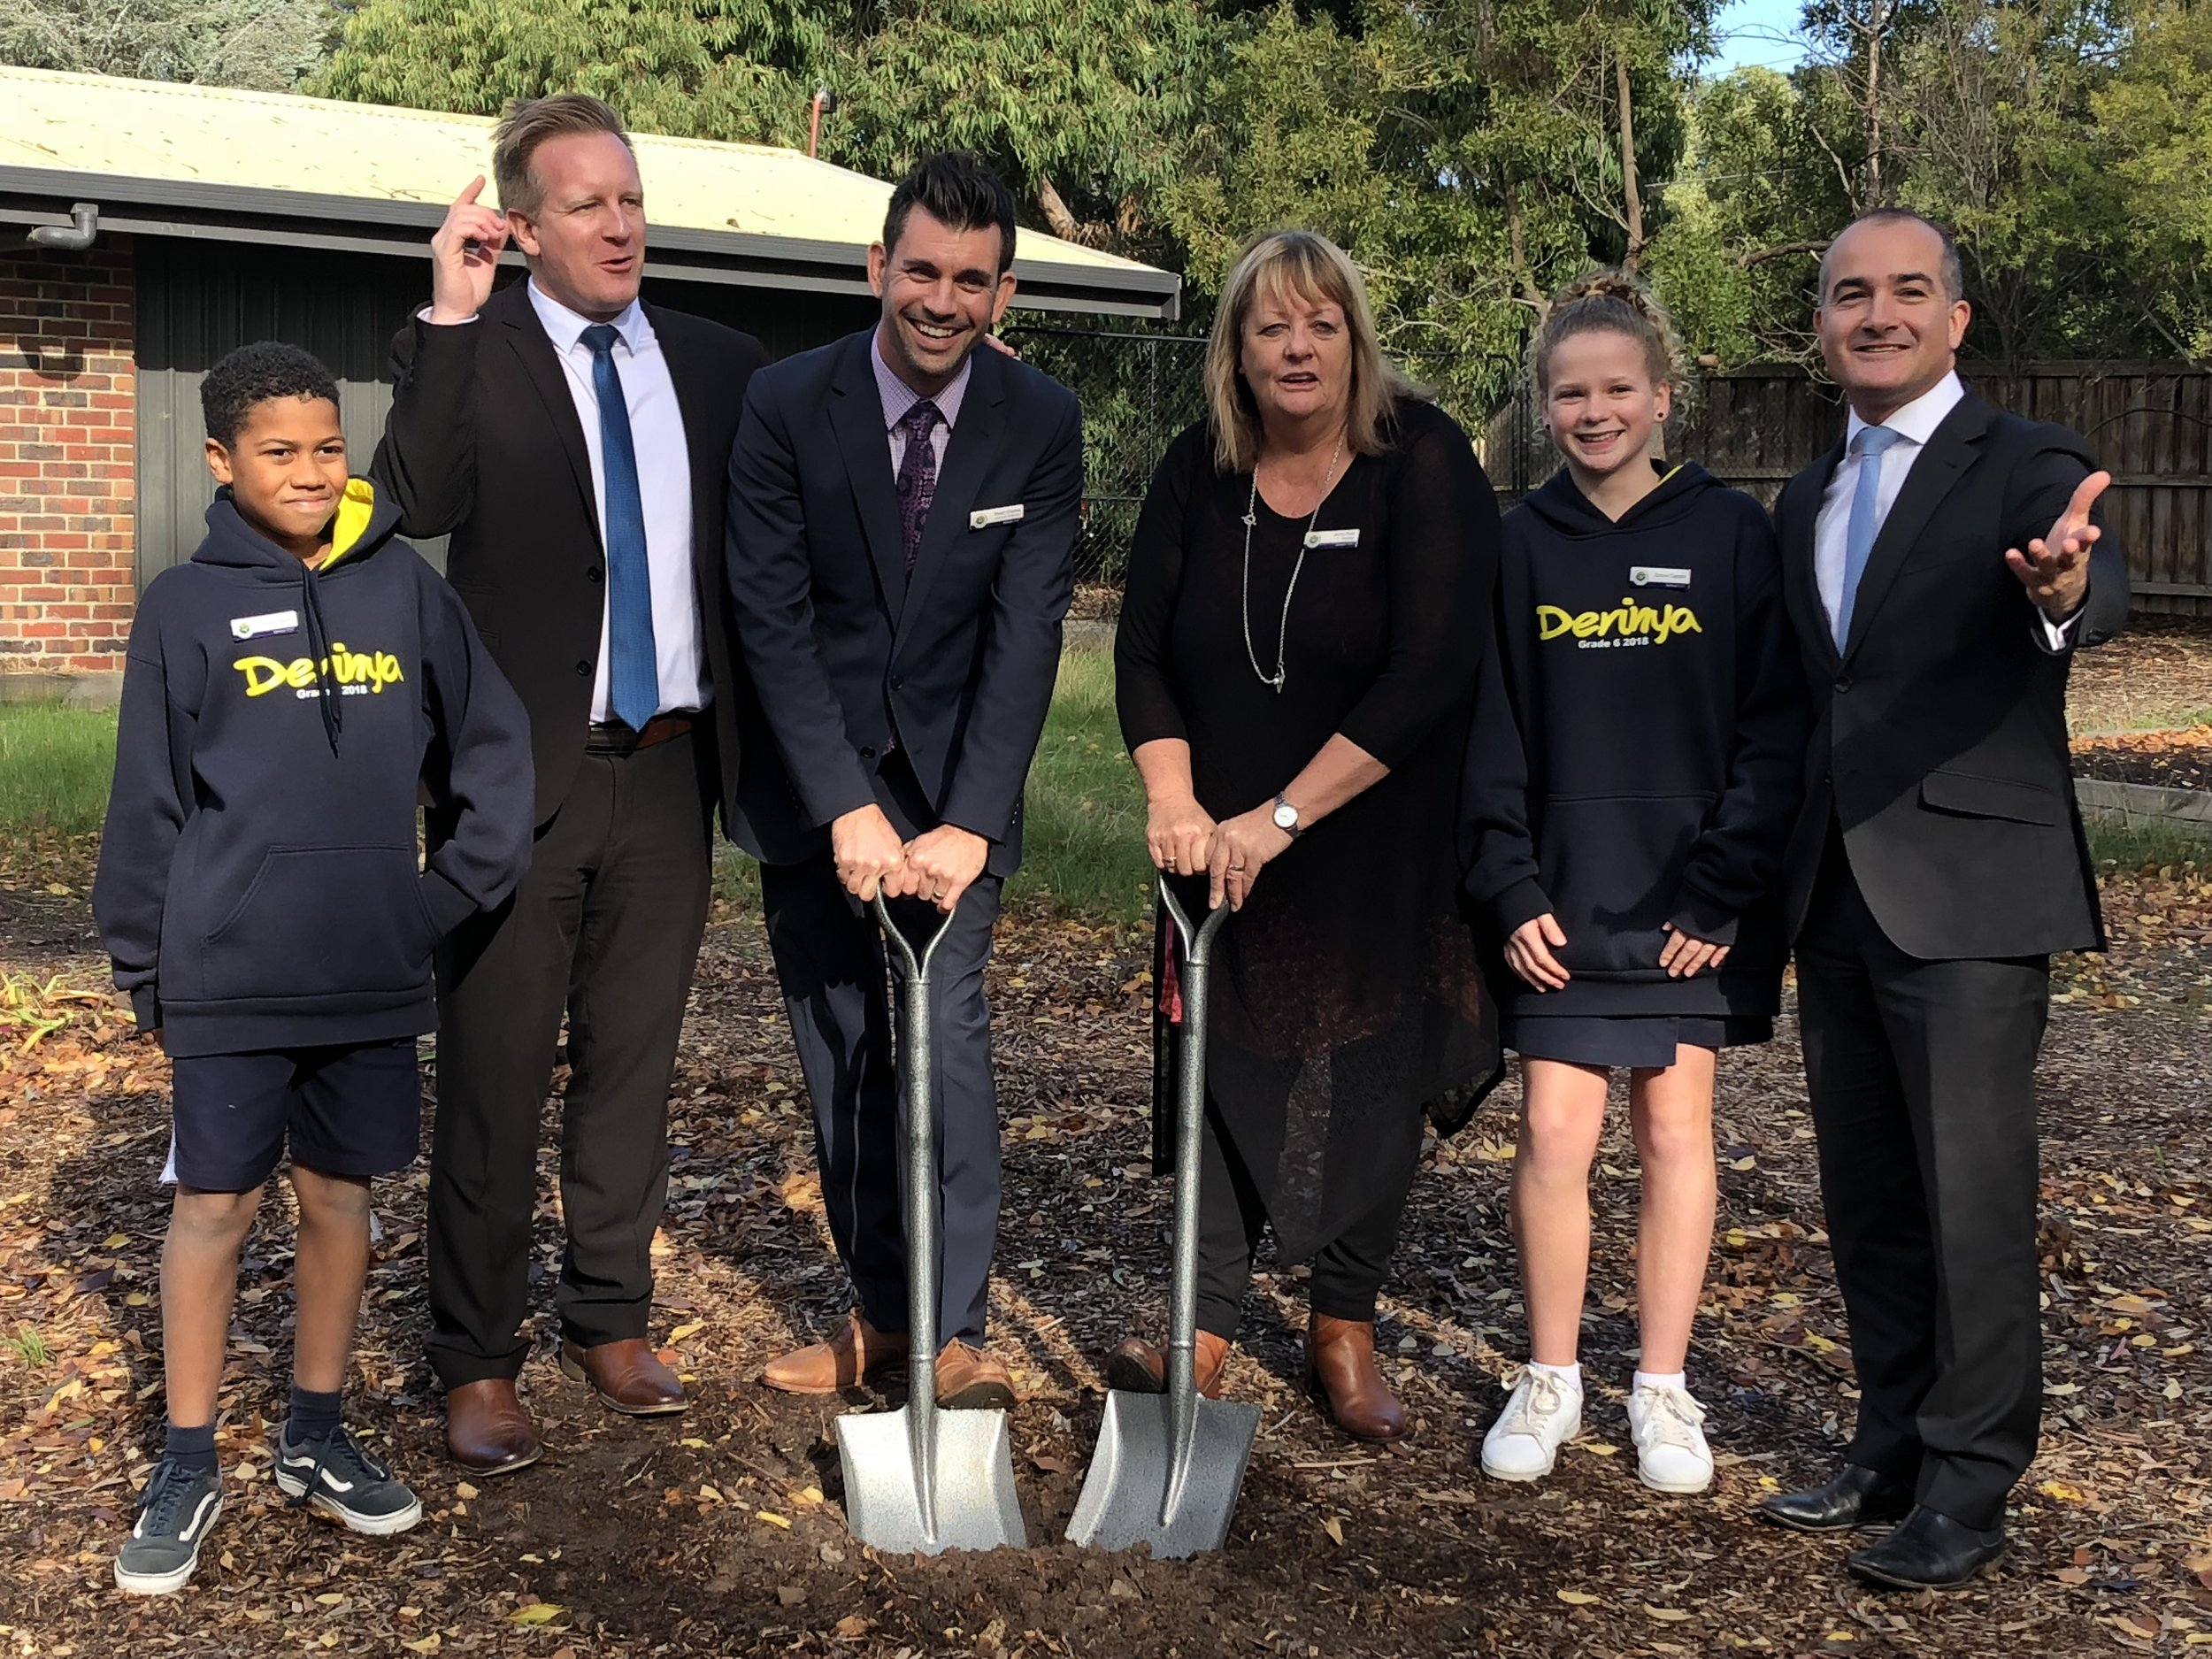 Turning the first sod back in August 2018 to start construction of the Kitchen Garden. In attendance were local MP Paul Edbrooke and Deputy Premier James Merlino.